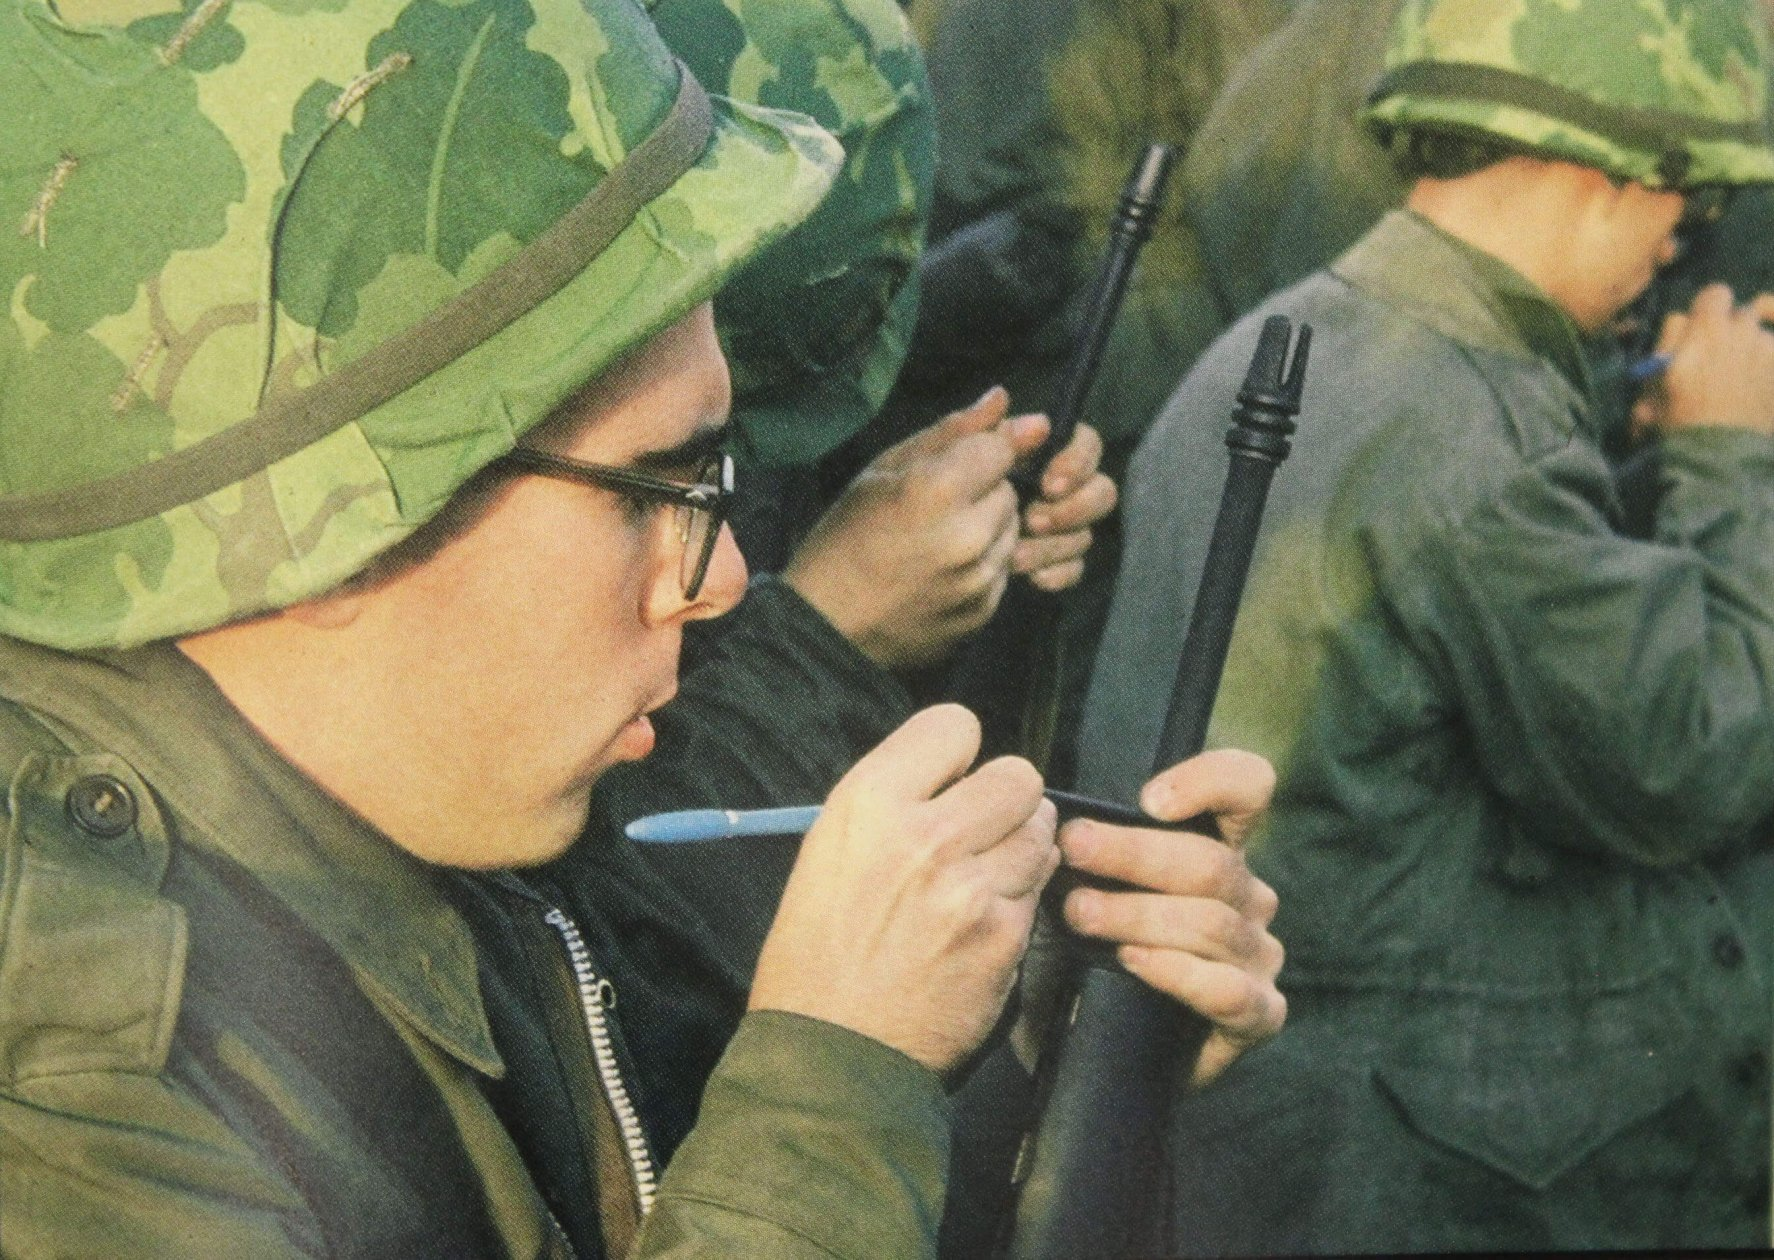 Young men inspecting their rifles, making marks on them.